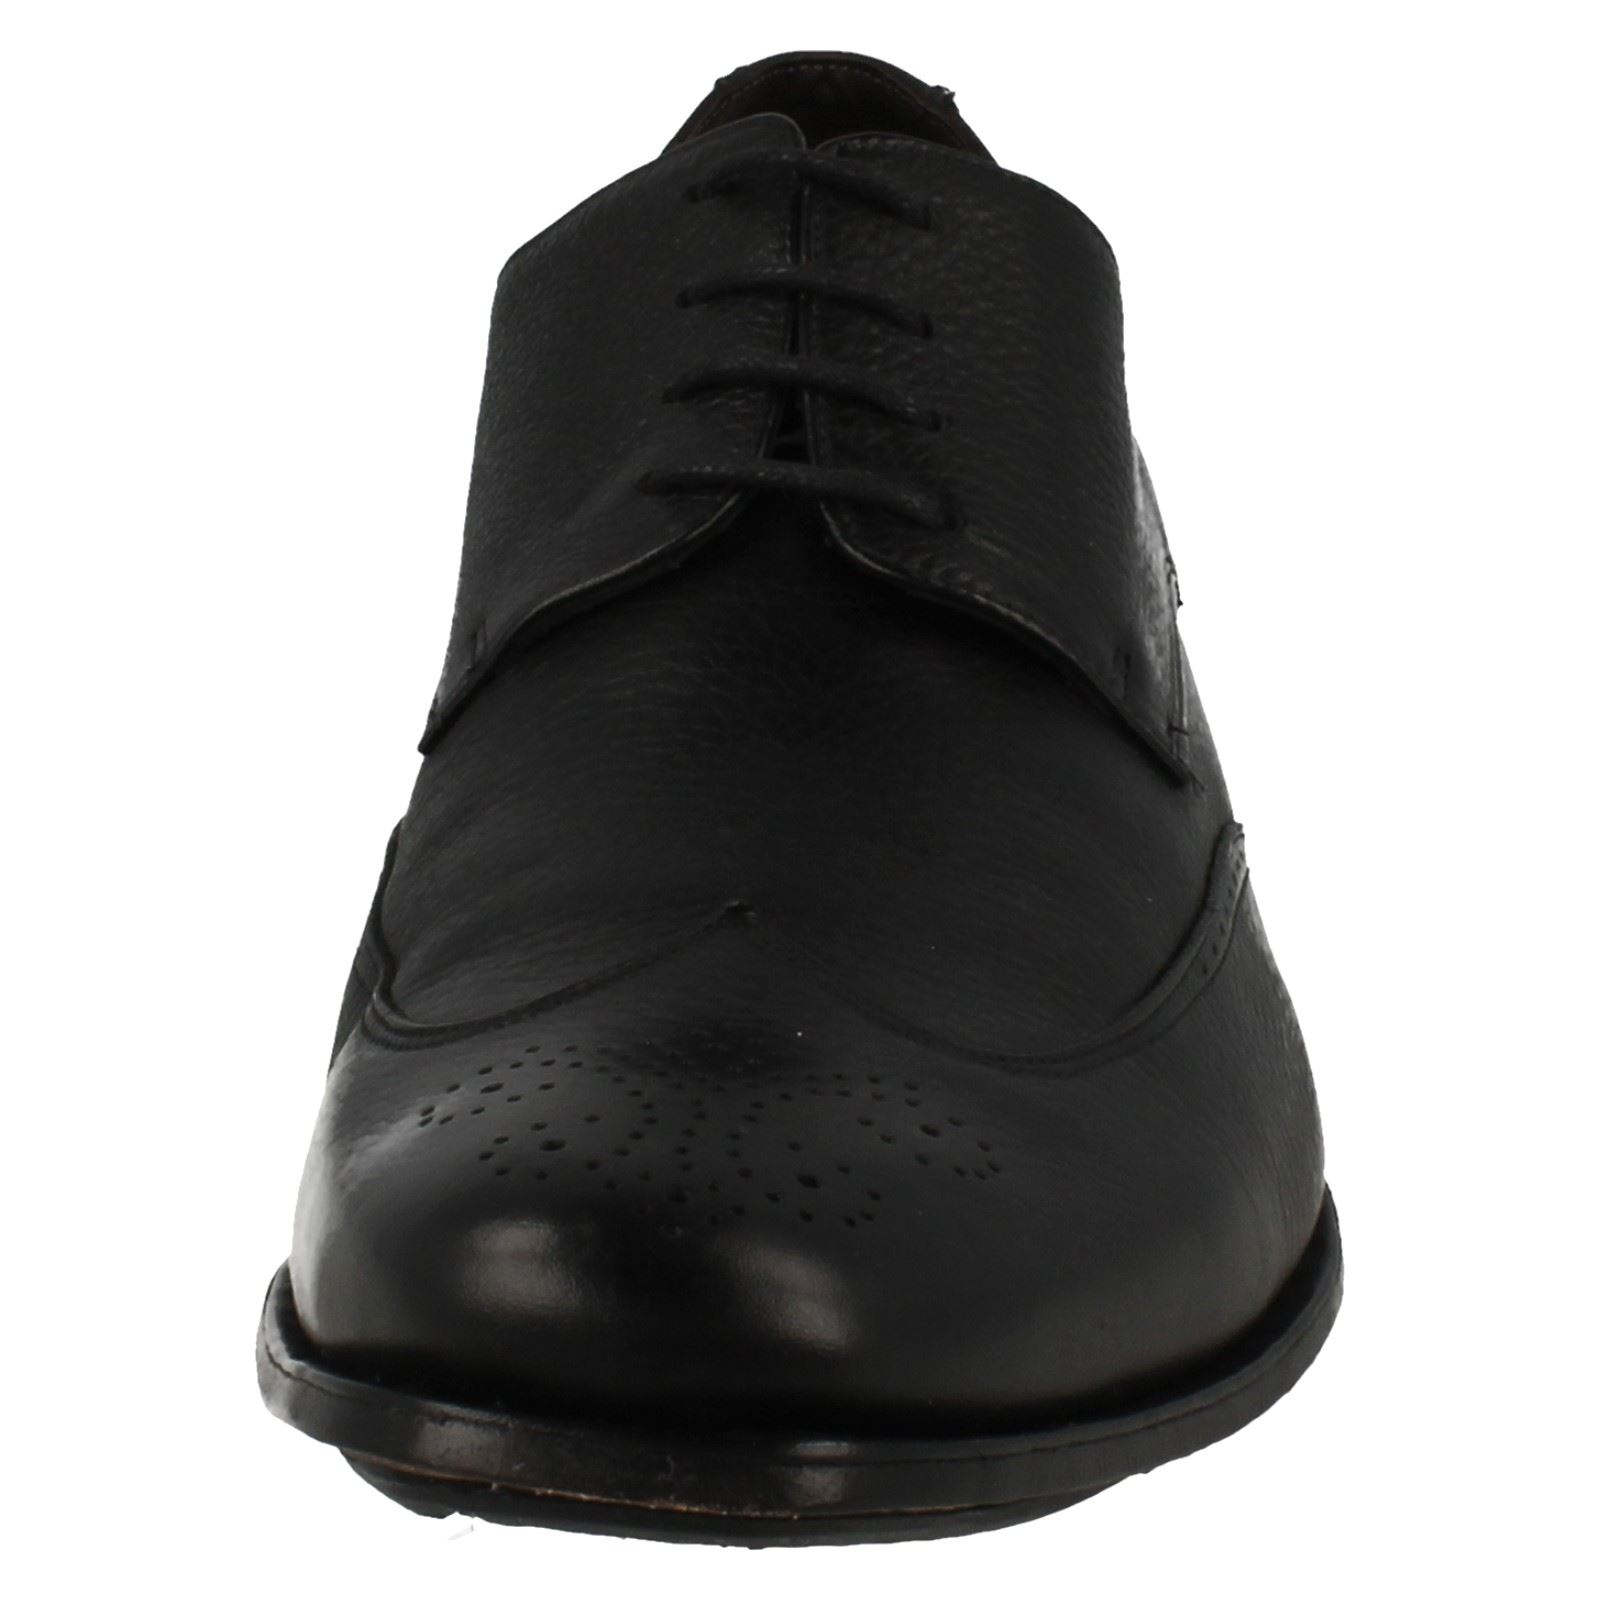 Mens Anatomic Prime Prime Prime Formal Shoes Guara 7c43f9